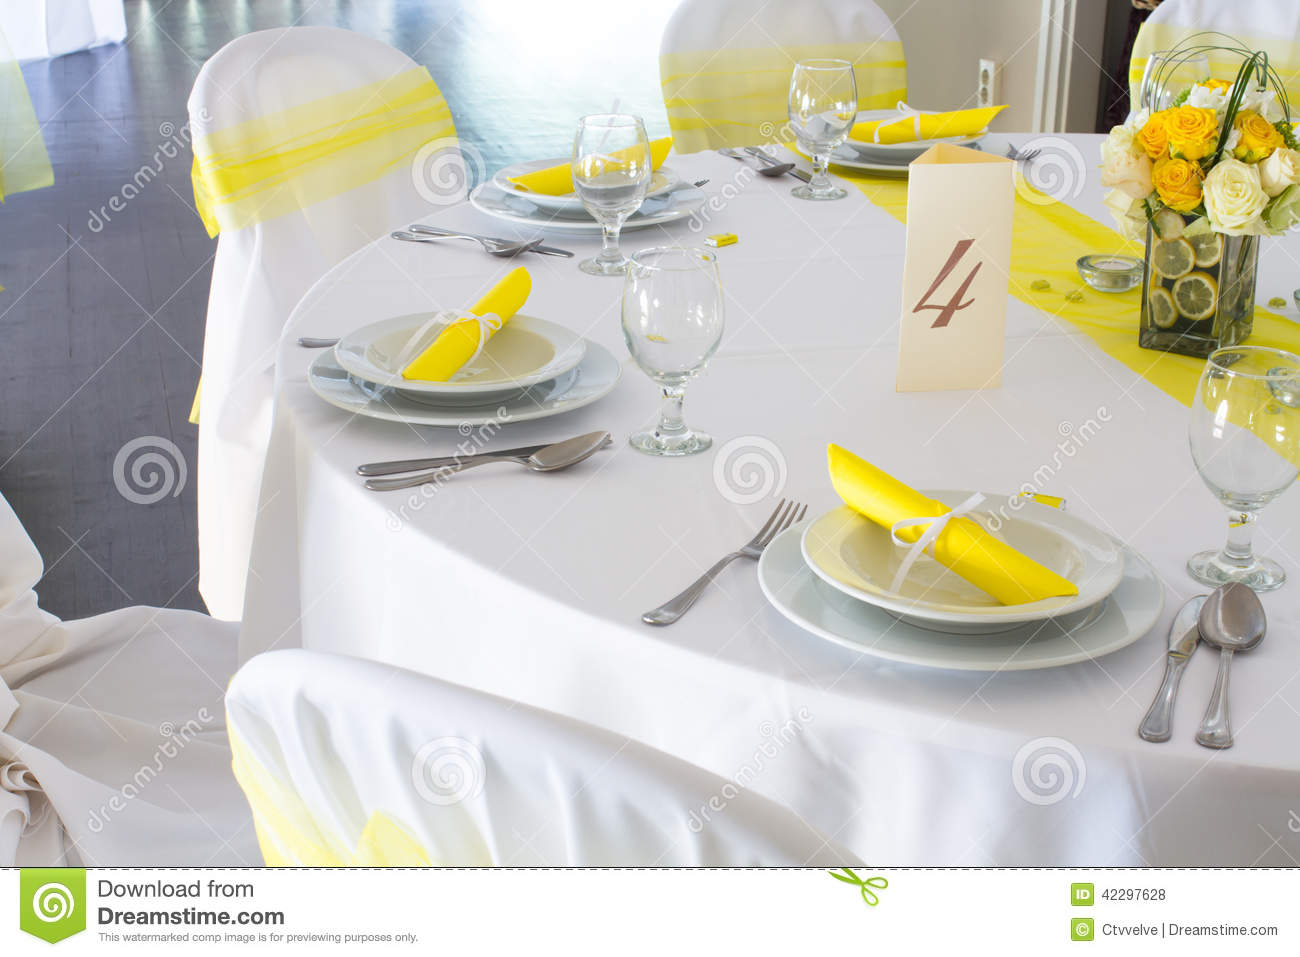 Wedding table decoration stock photo. Image of bouquet - 42297628